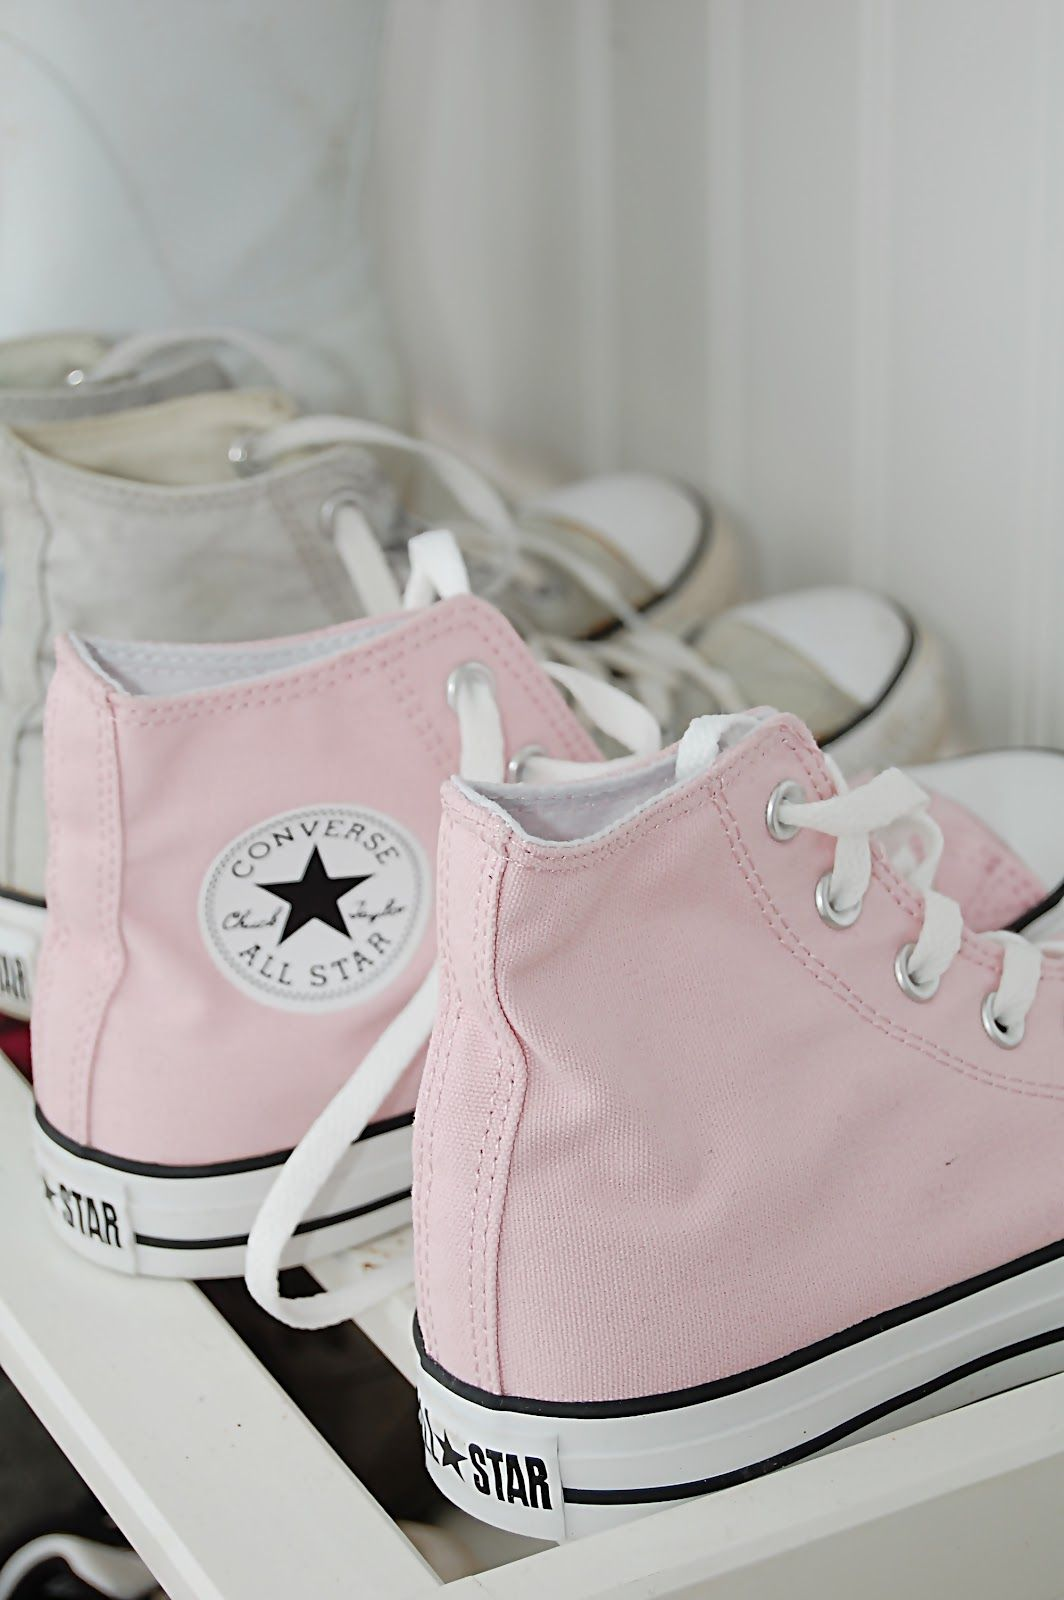 Why Vintage Pale Pink Should Be All Over You This Year vintage pale pink Why Vintage Pale Pink Should Be All Over You This Year Why Vintage Pale Pink Should Be All Over You This Year 3